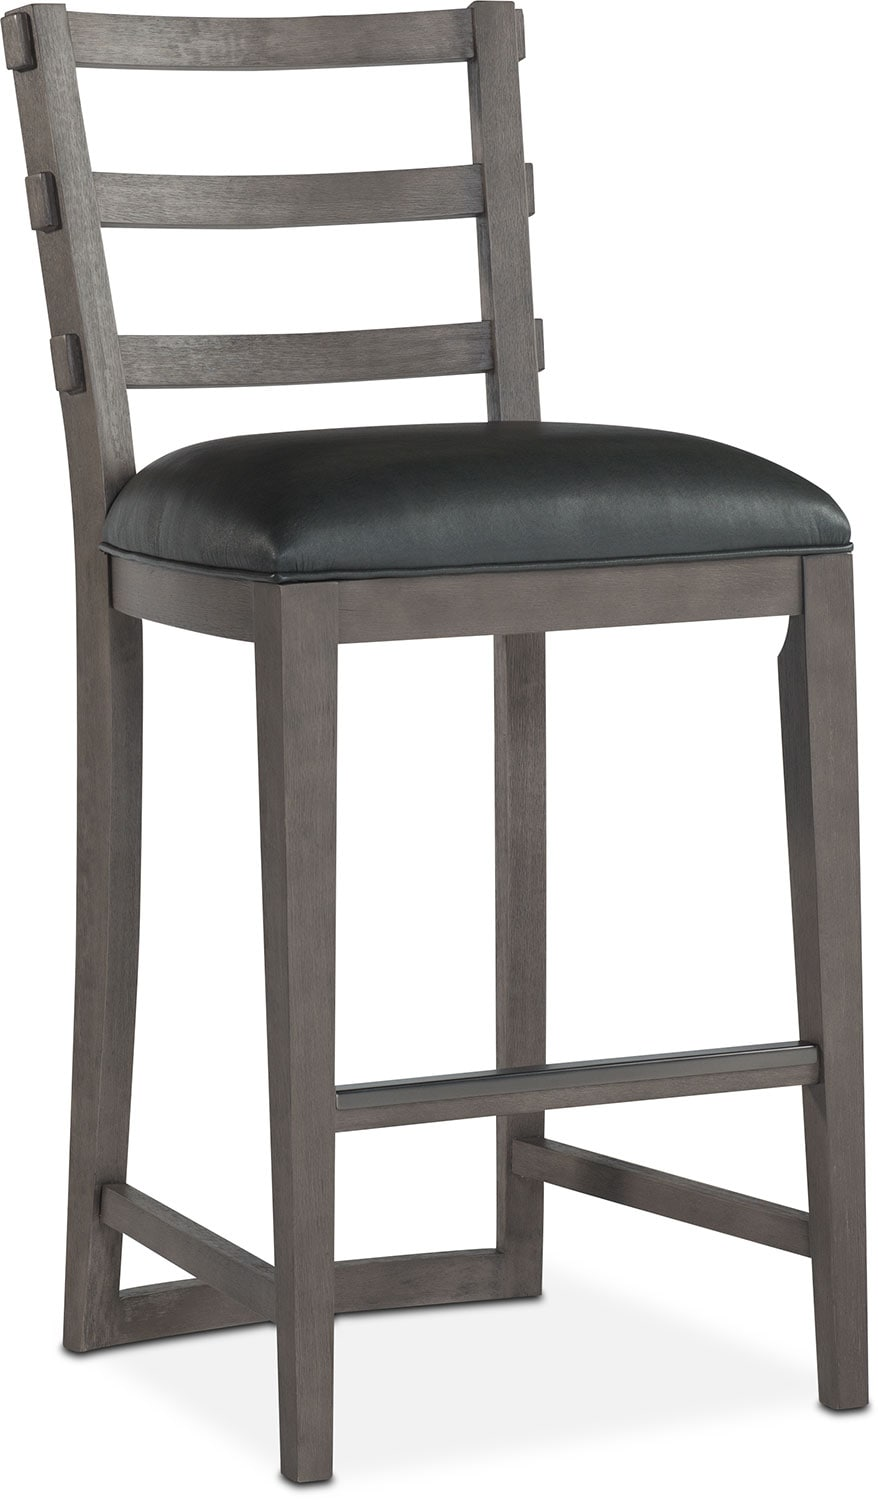 Counter & Bar Stools | Value City Furniture